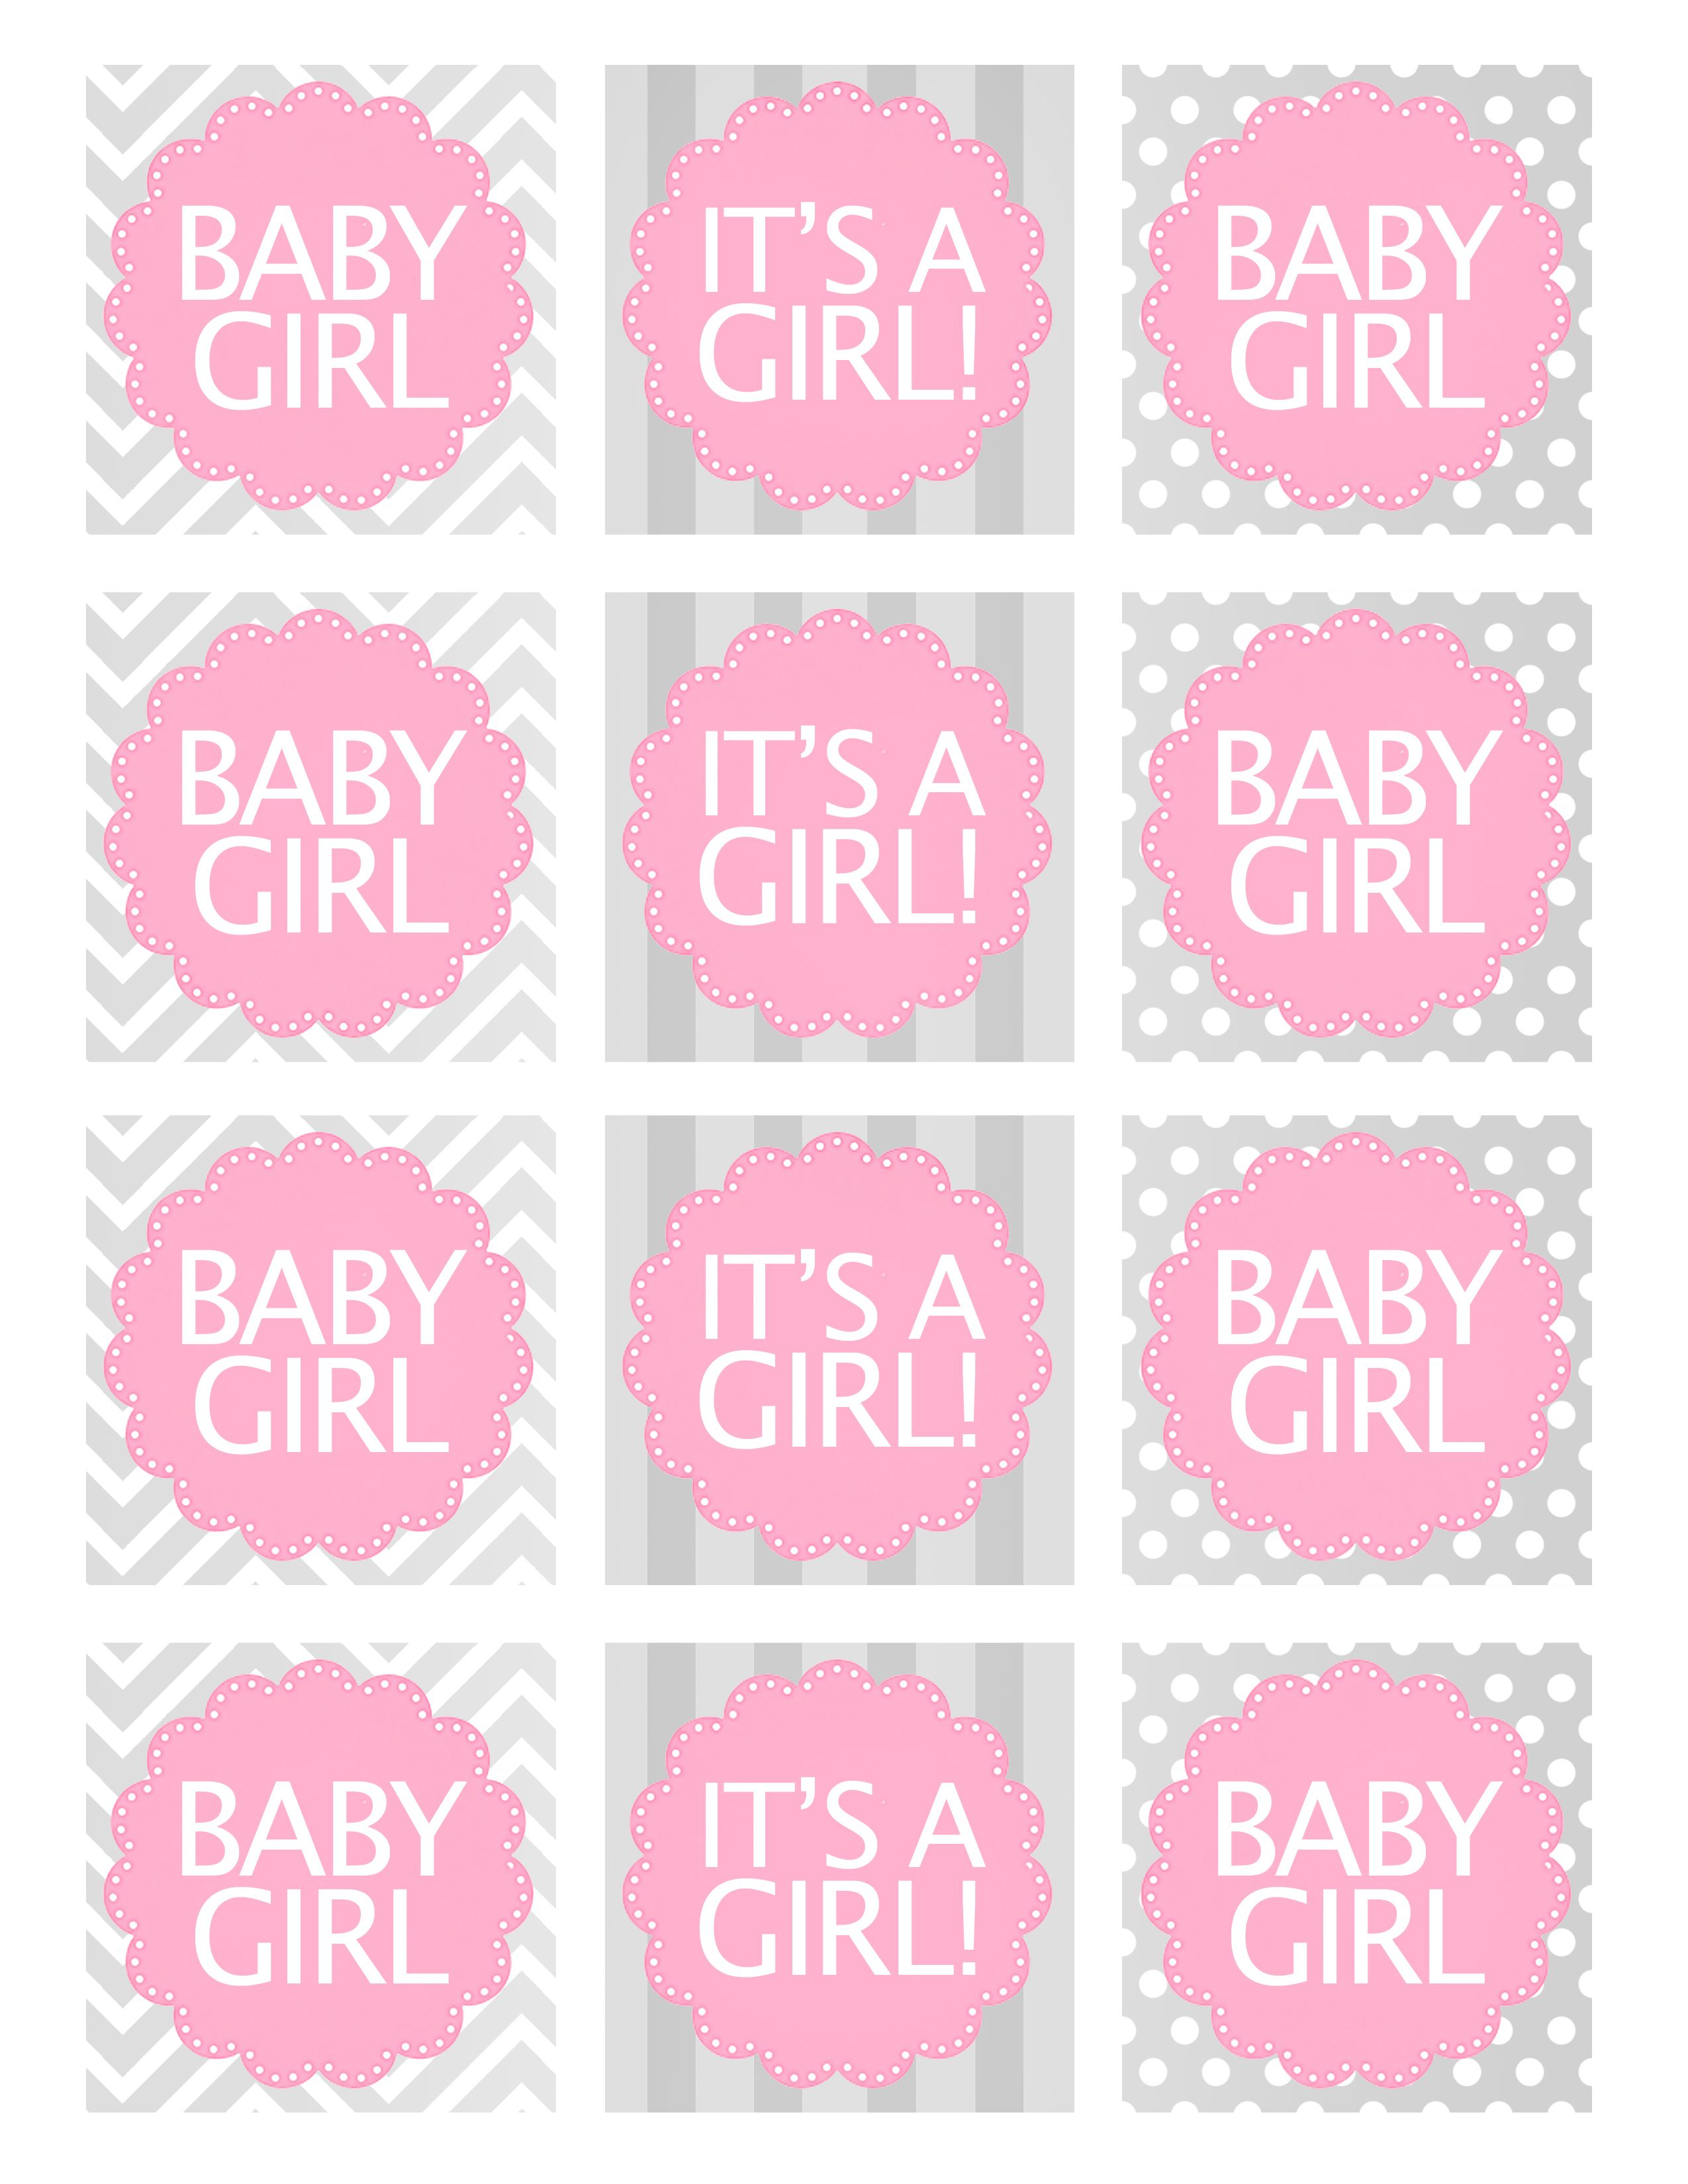 Baby Girl Shower Free Printables | Baby Shower Ideas | Pinterest - Free Printable Baby Shower Favor Tags